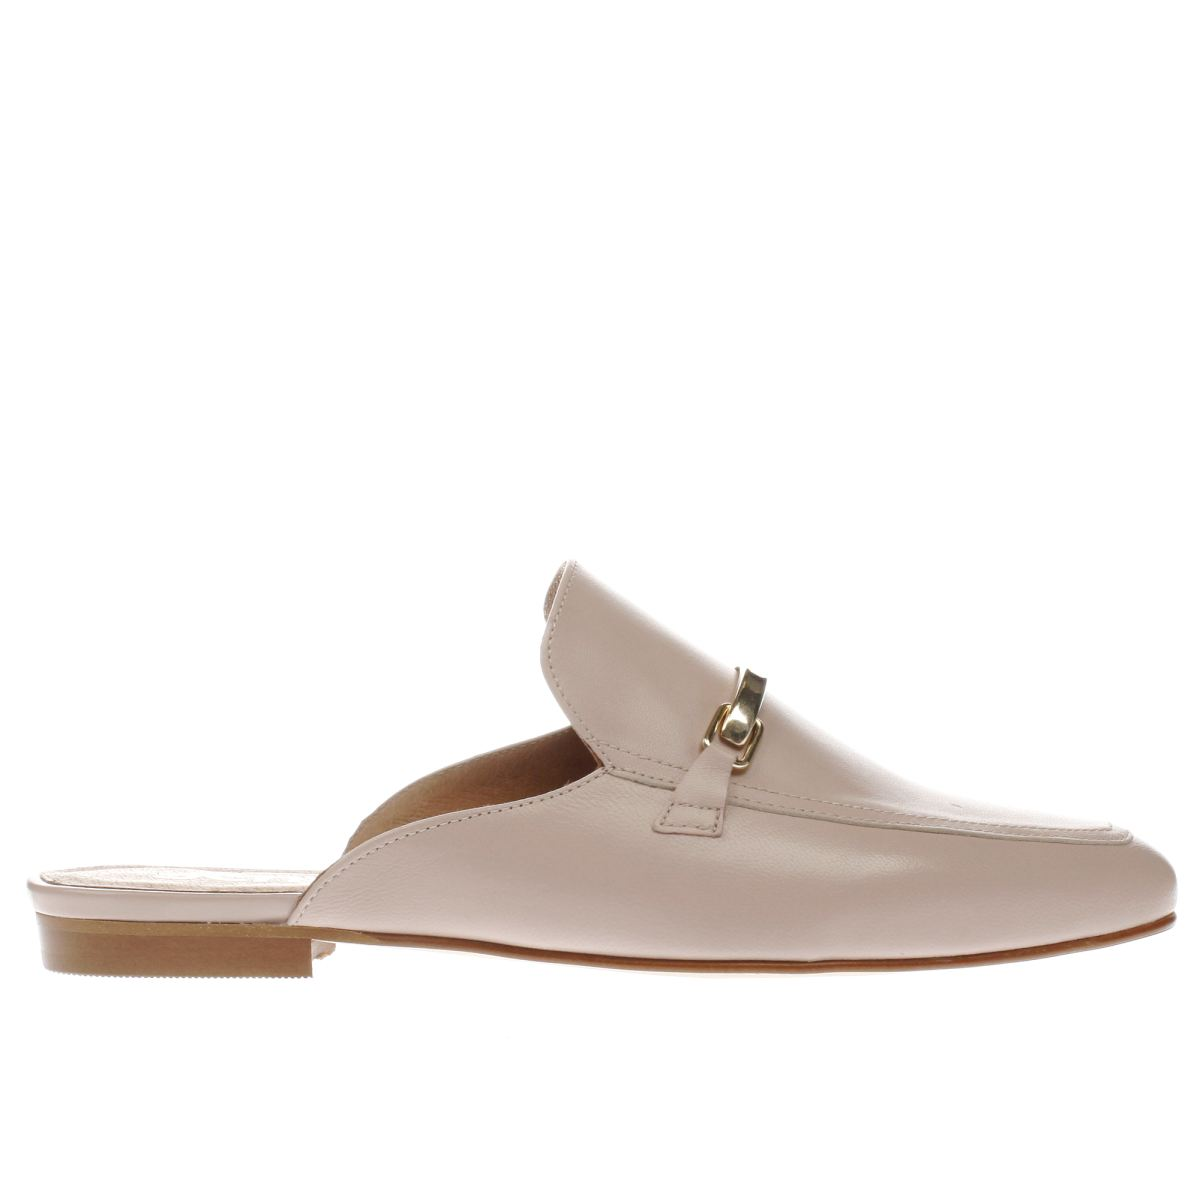 schuh pale pink ritzy flat shoes